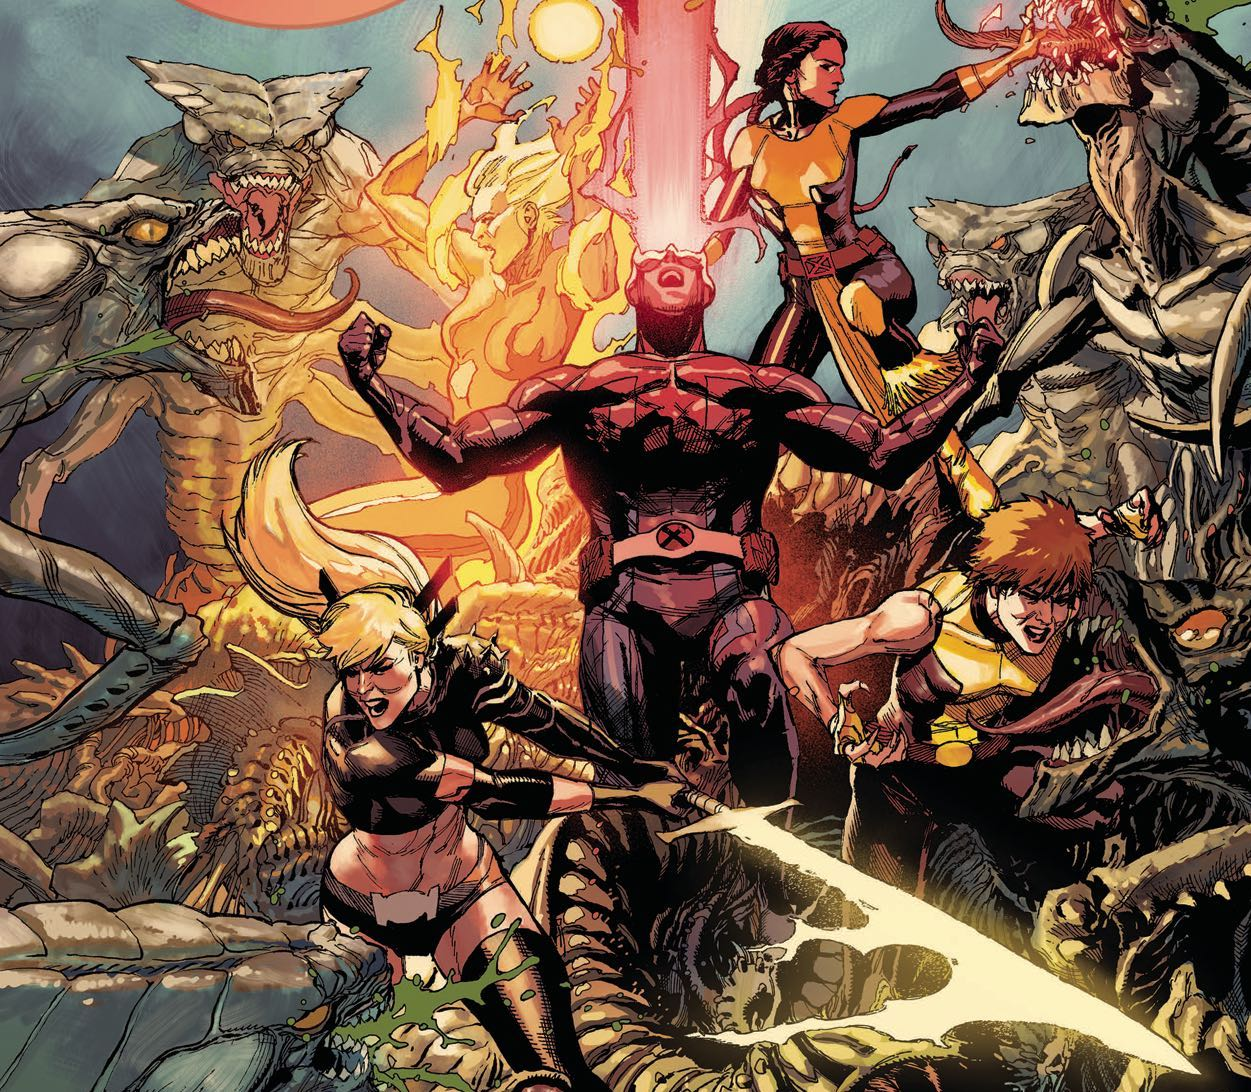 The future of X-Men is bright and it's thanks to a treasure chest of ideas that is endless.